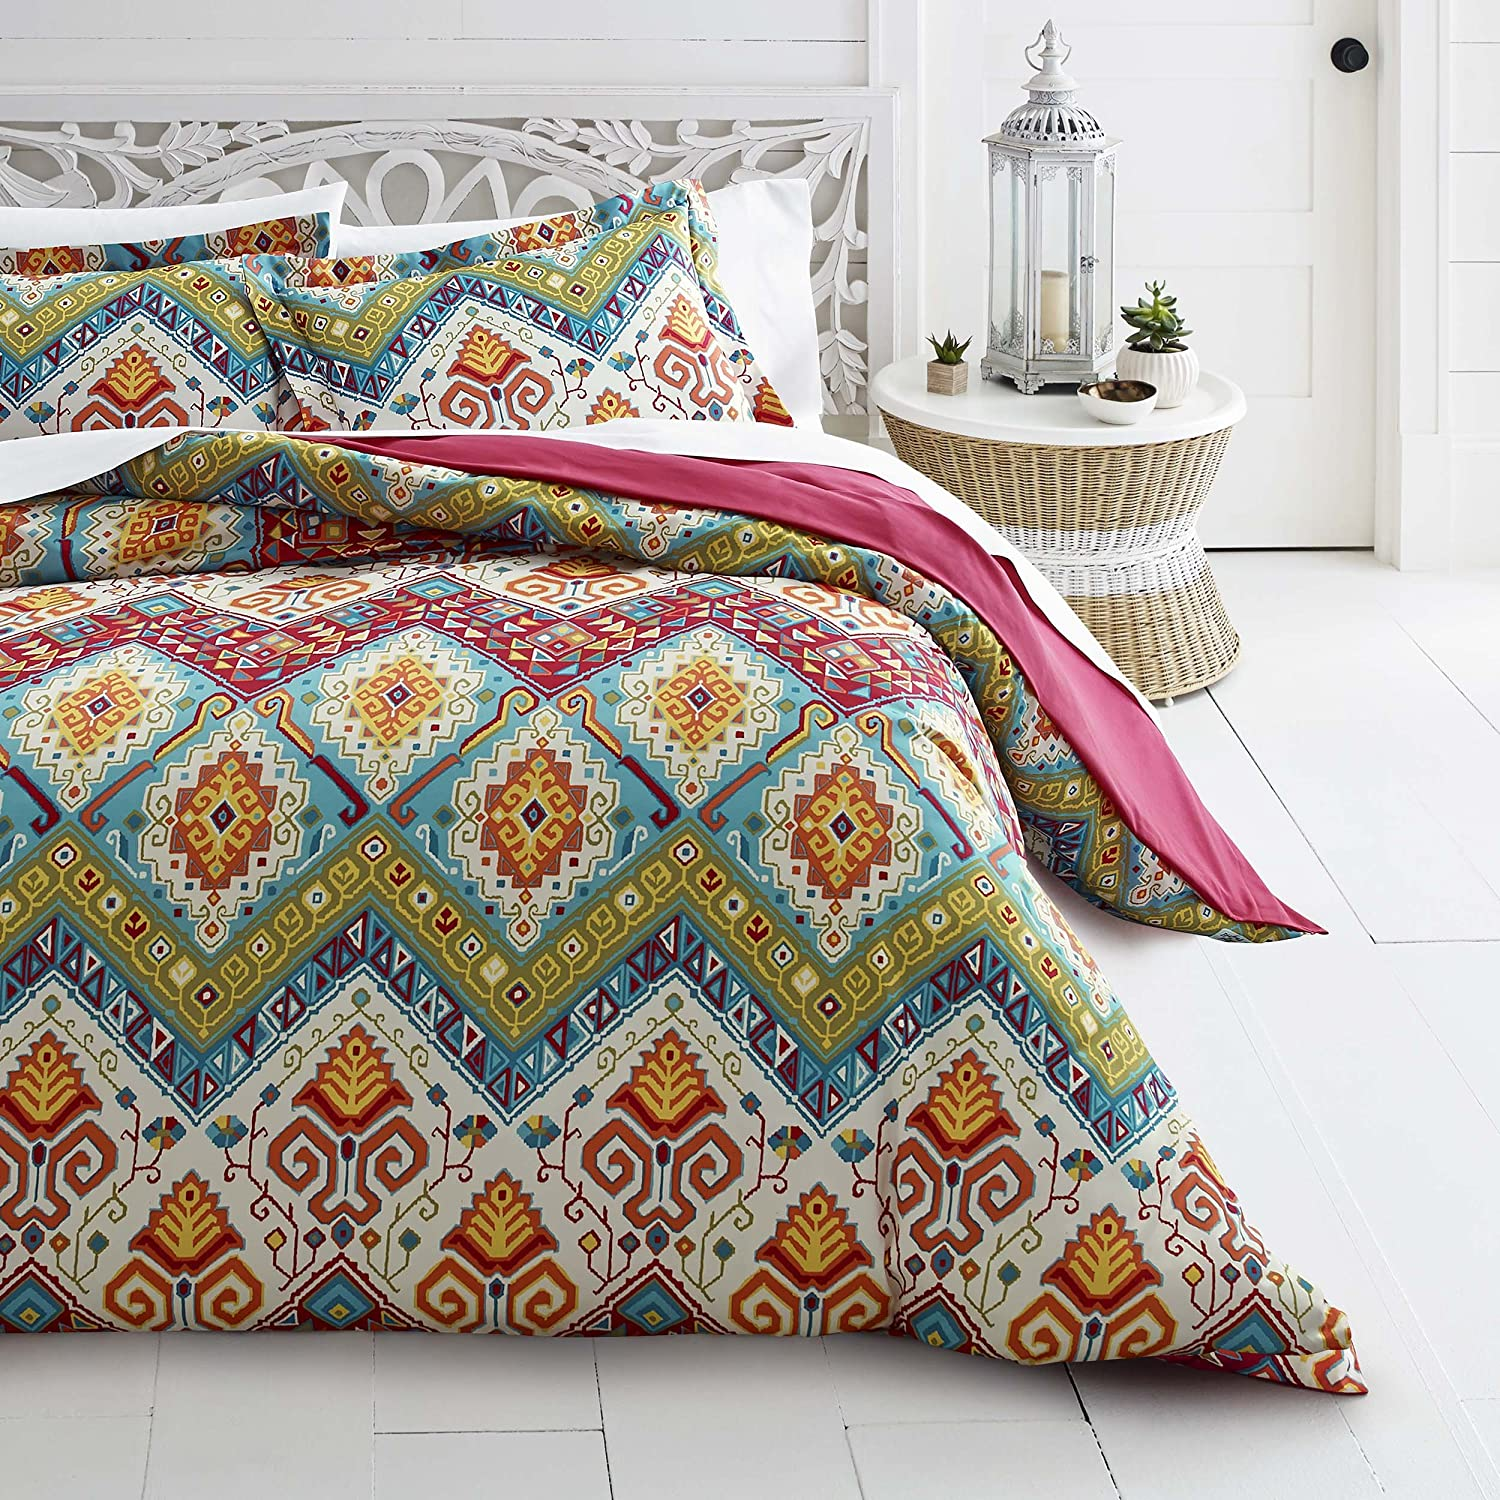 Azalea Skye Moroccan Nights Duvet Challenge the lowest price of Japan King Set Blue Safety and trust Cover